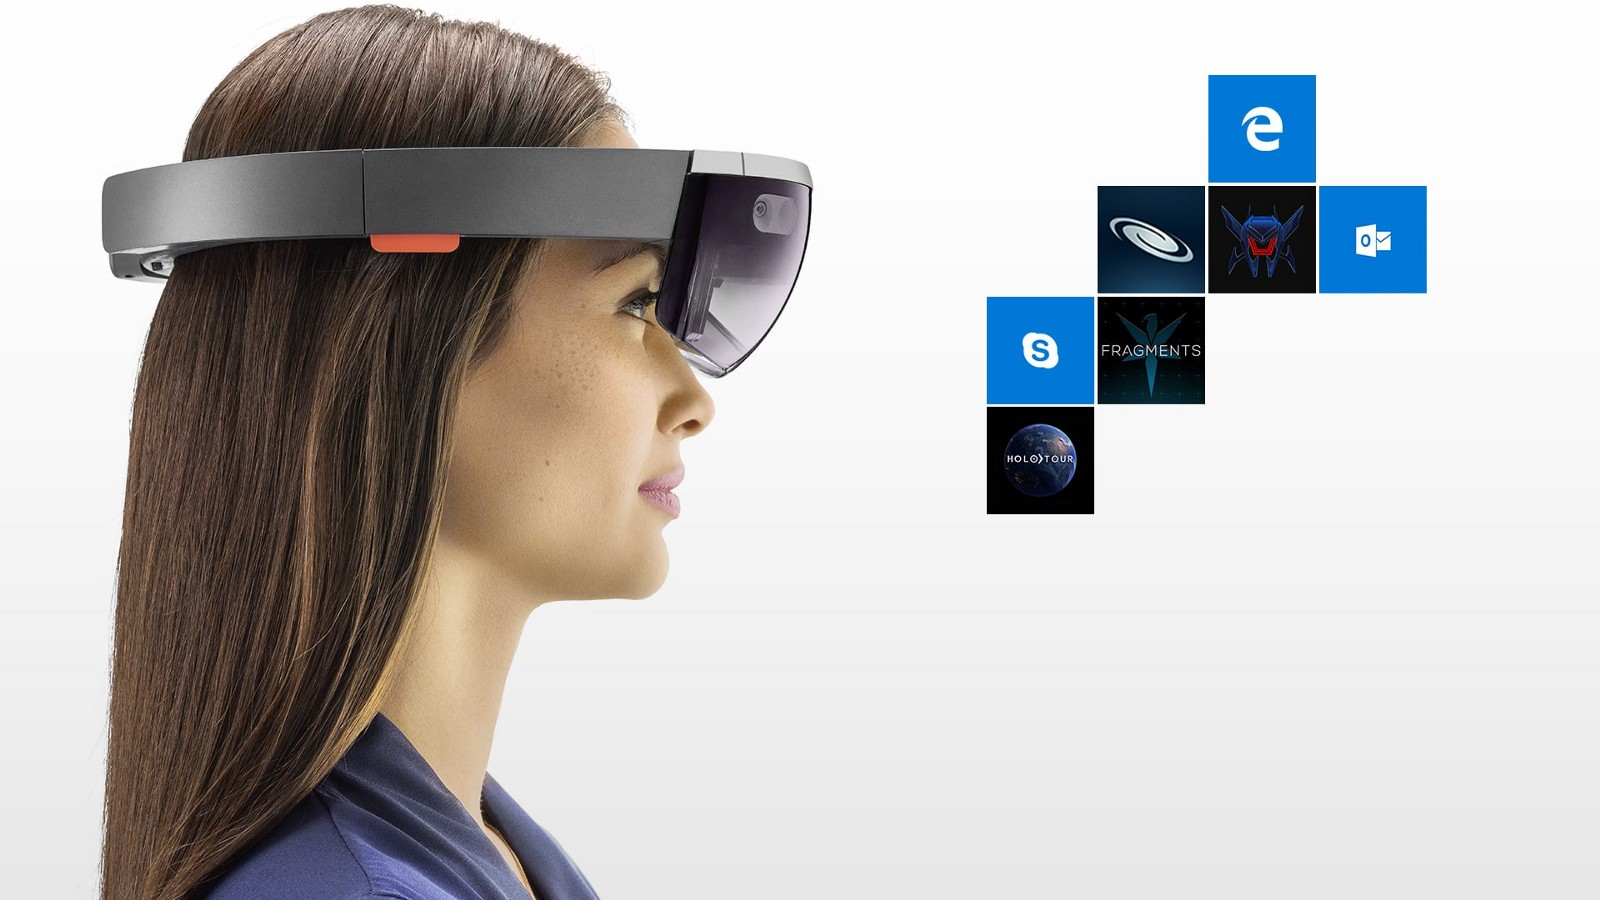 VR glasses Microsoft HoloLens 2 will receive the Snapdragon chip 850